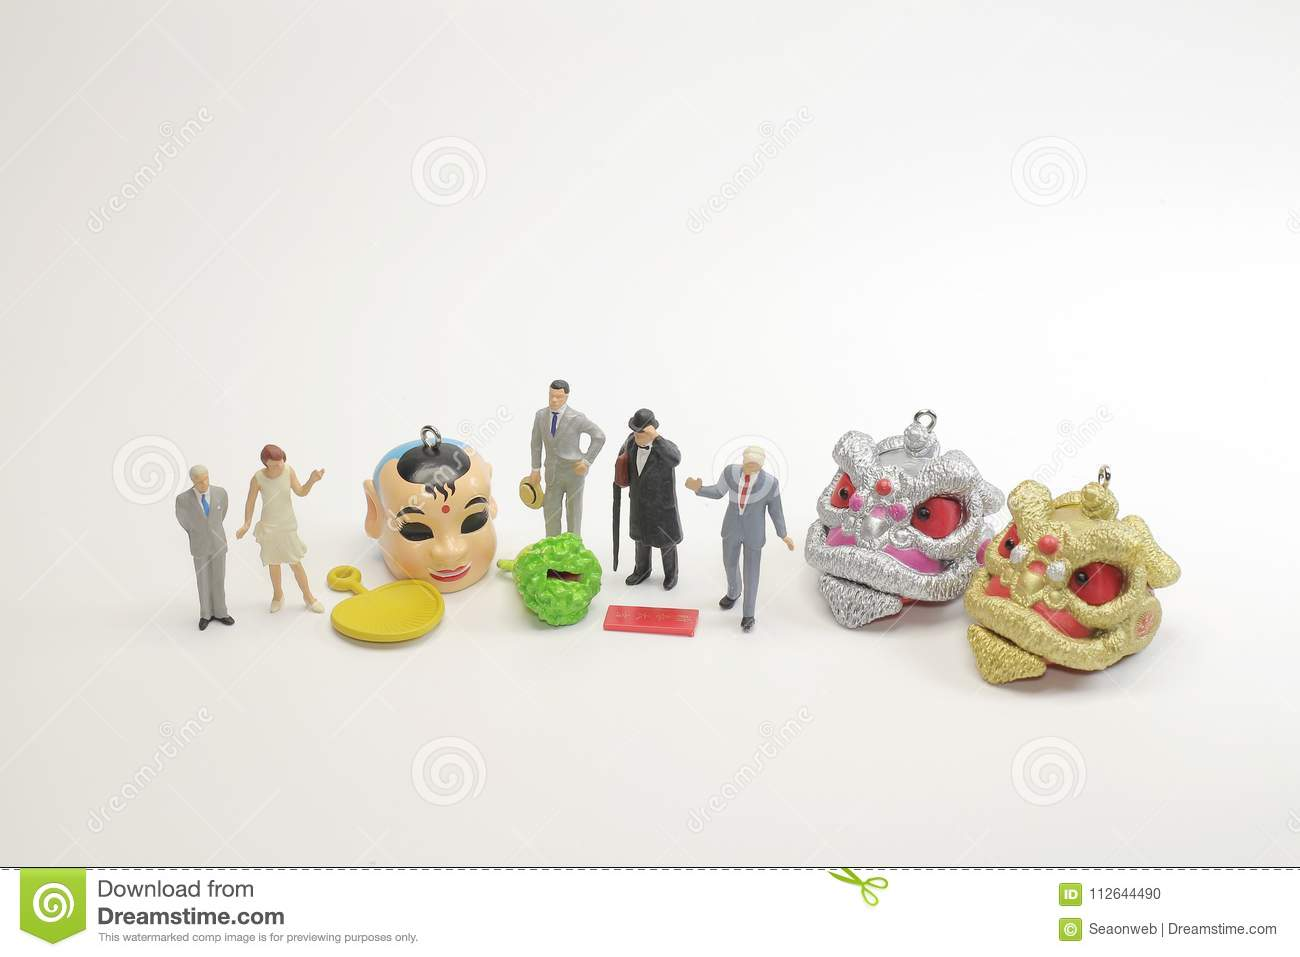 9652ad92d A Small Toys Of Lion Dance At New Year Stock Photo - Image of lion ...